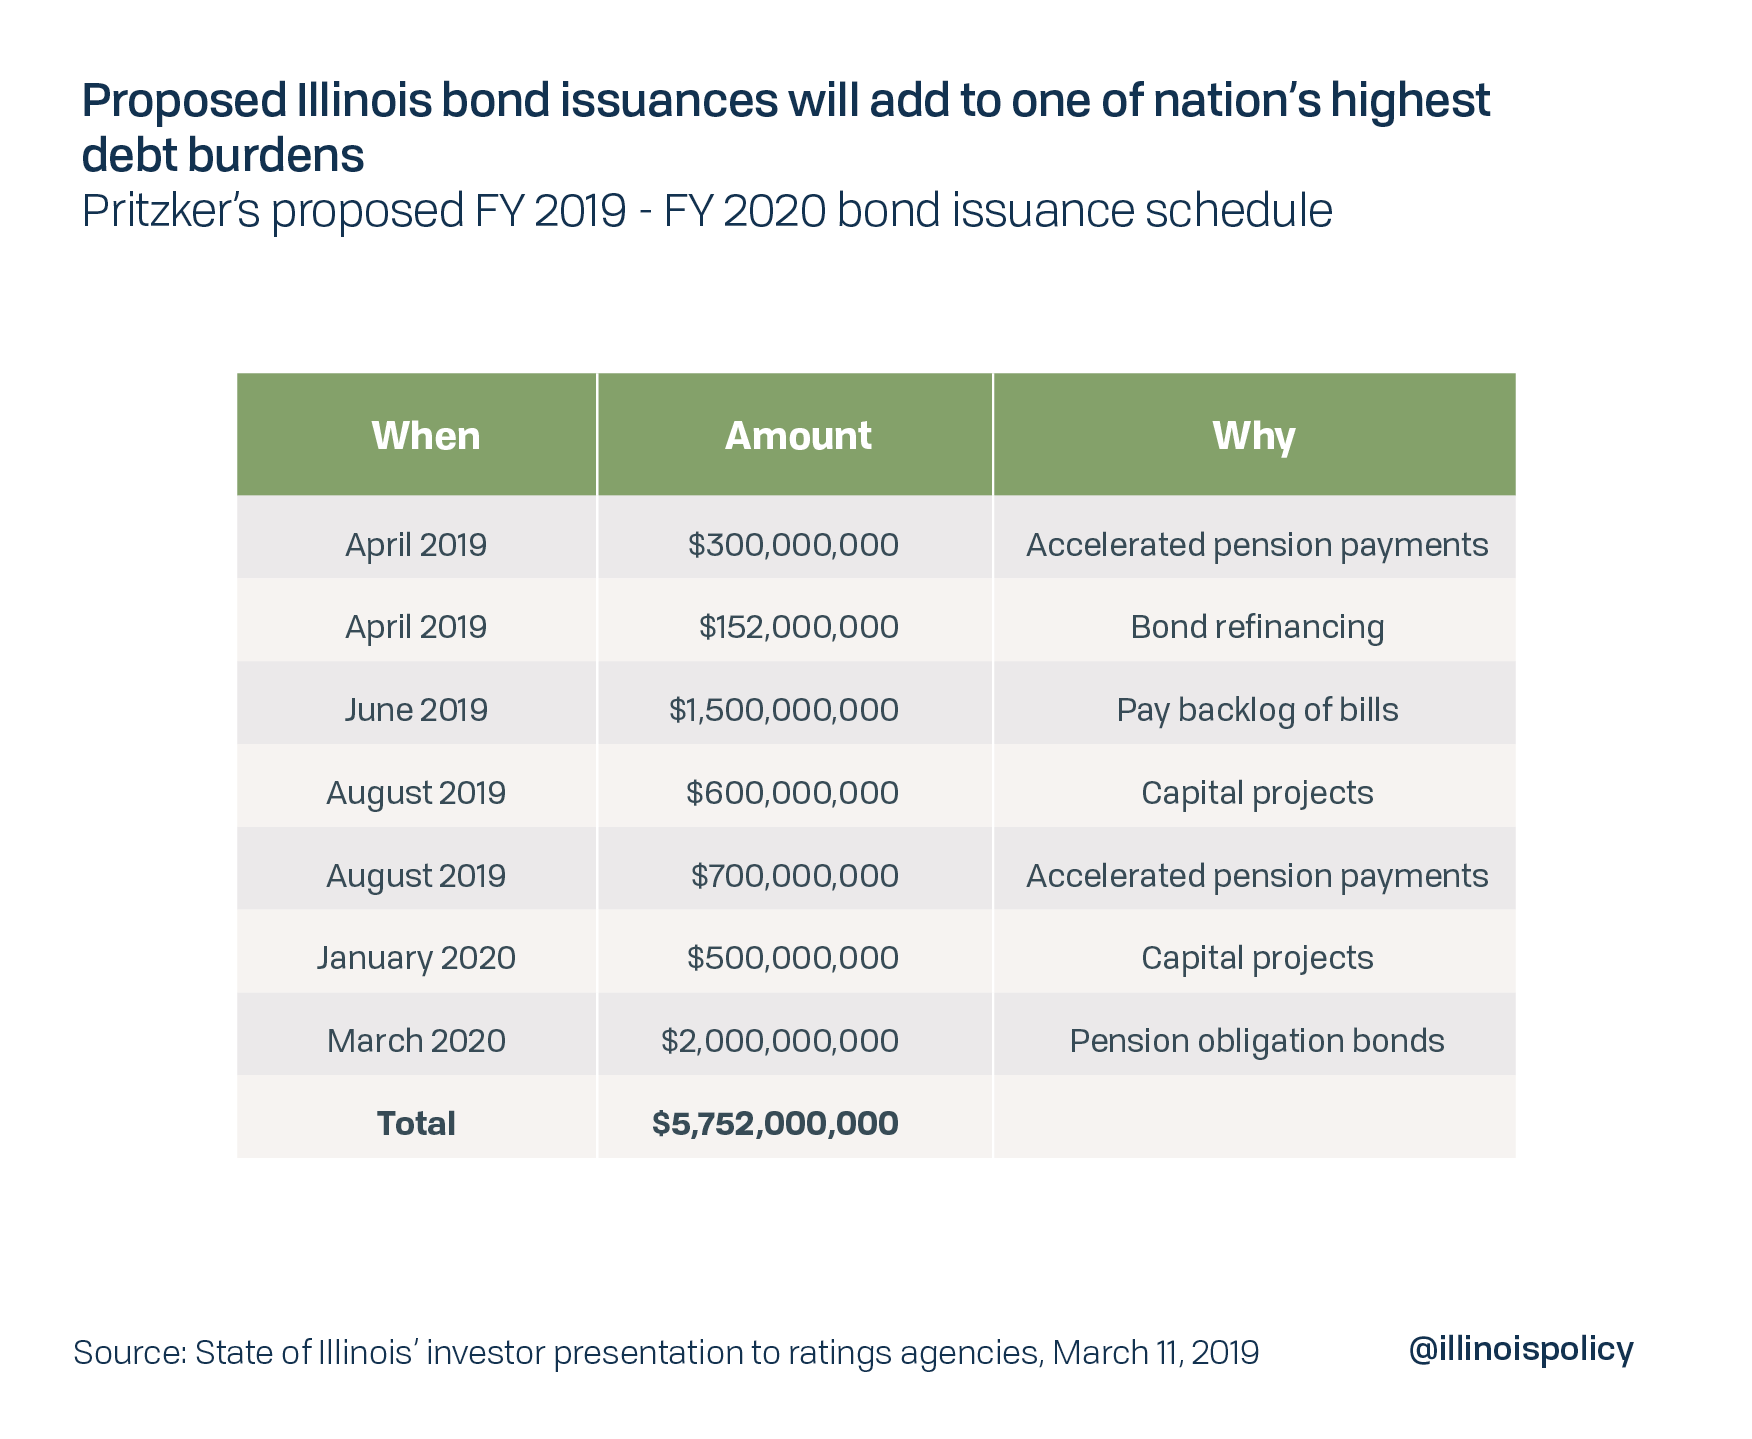 Proposed Illinois bond issuances will add to one of the nation's highest debt burdens